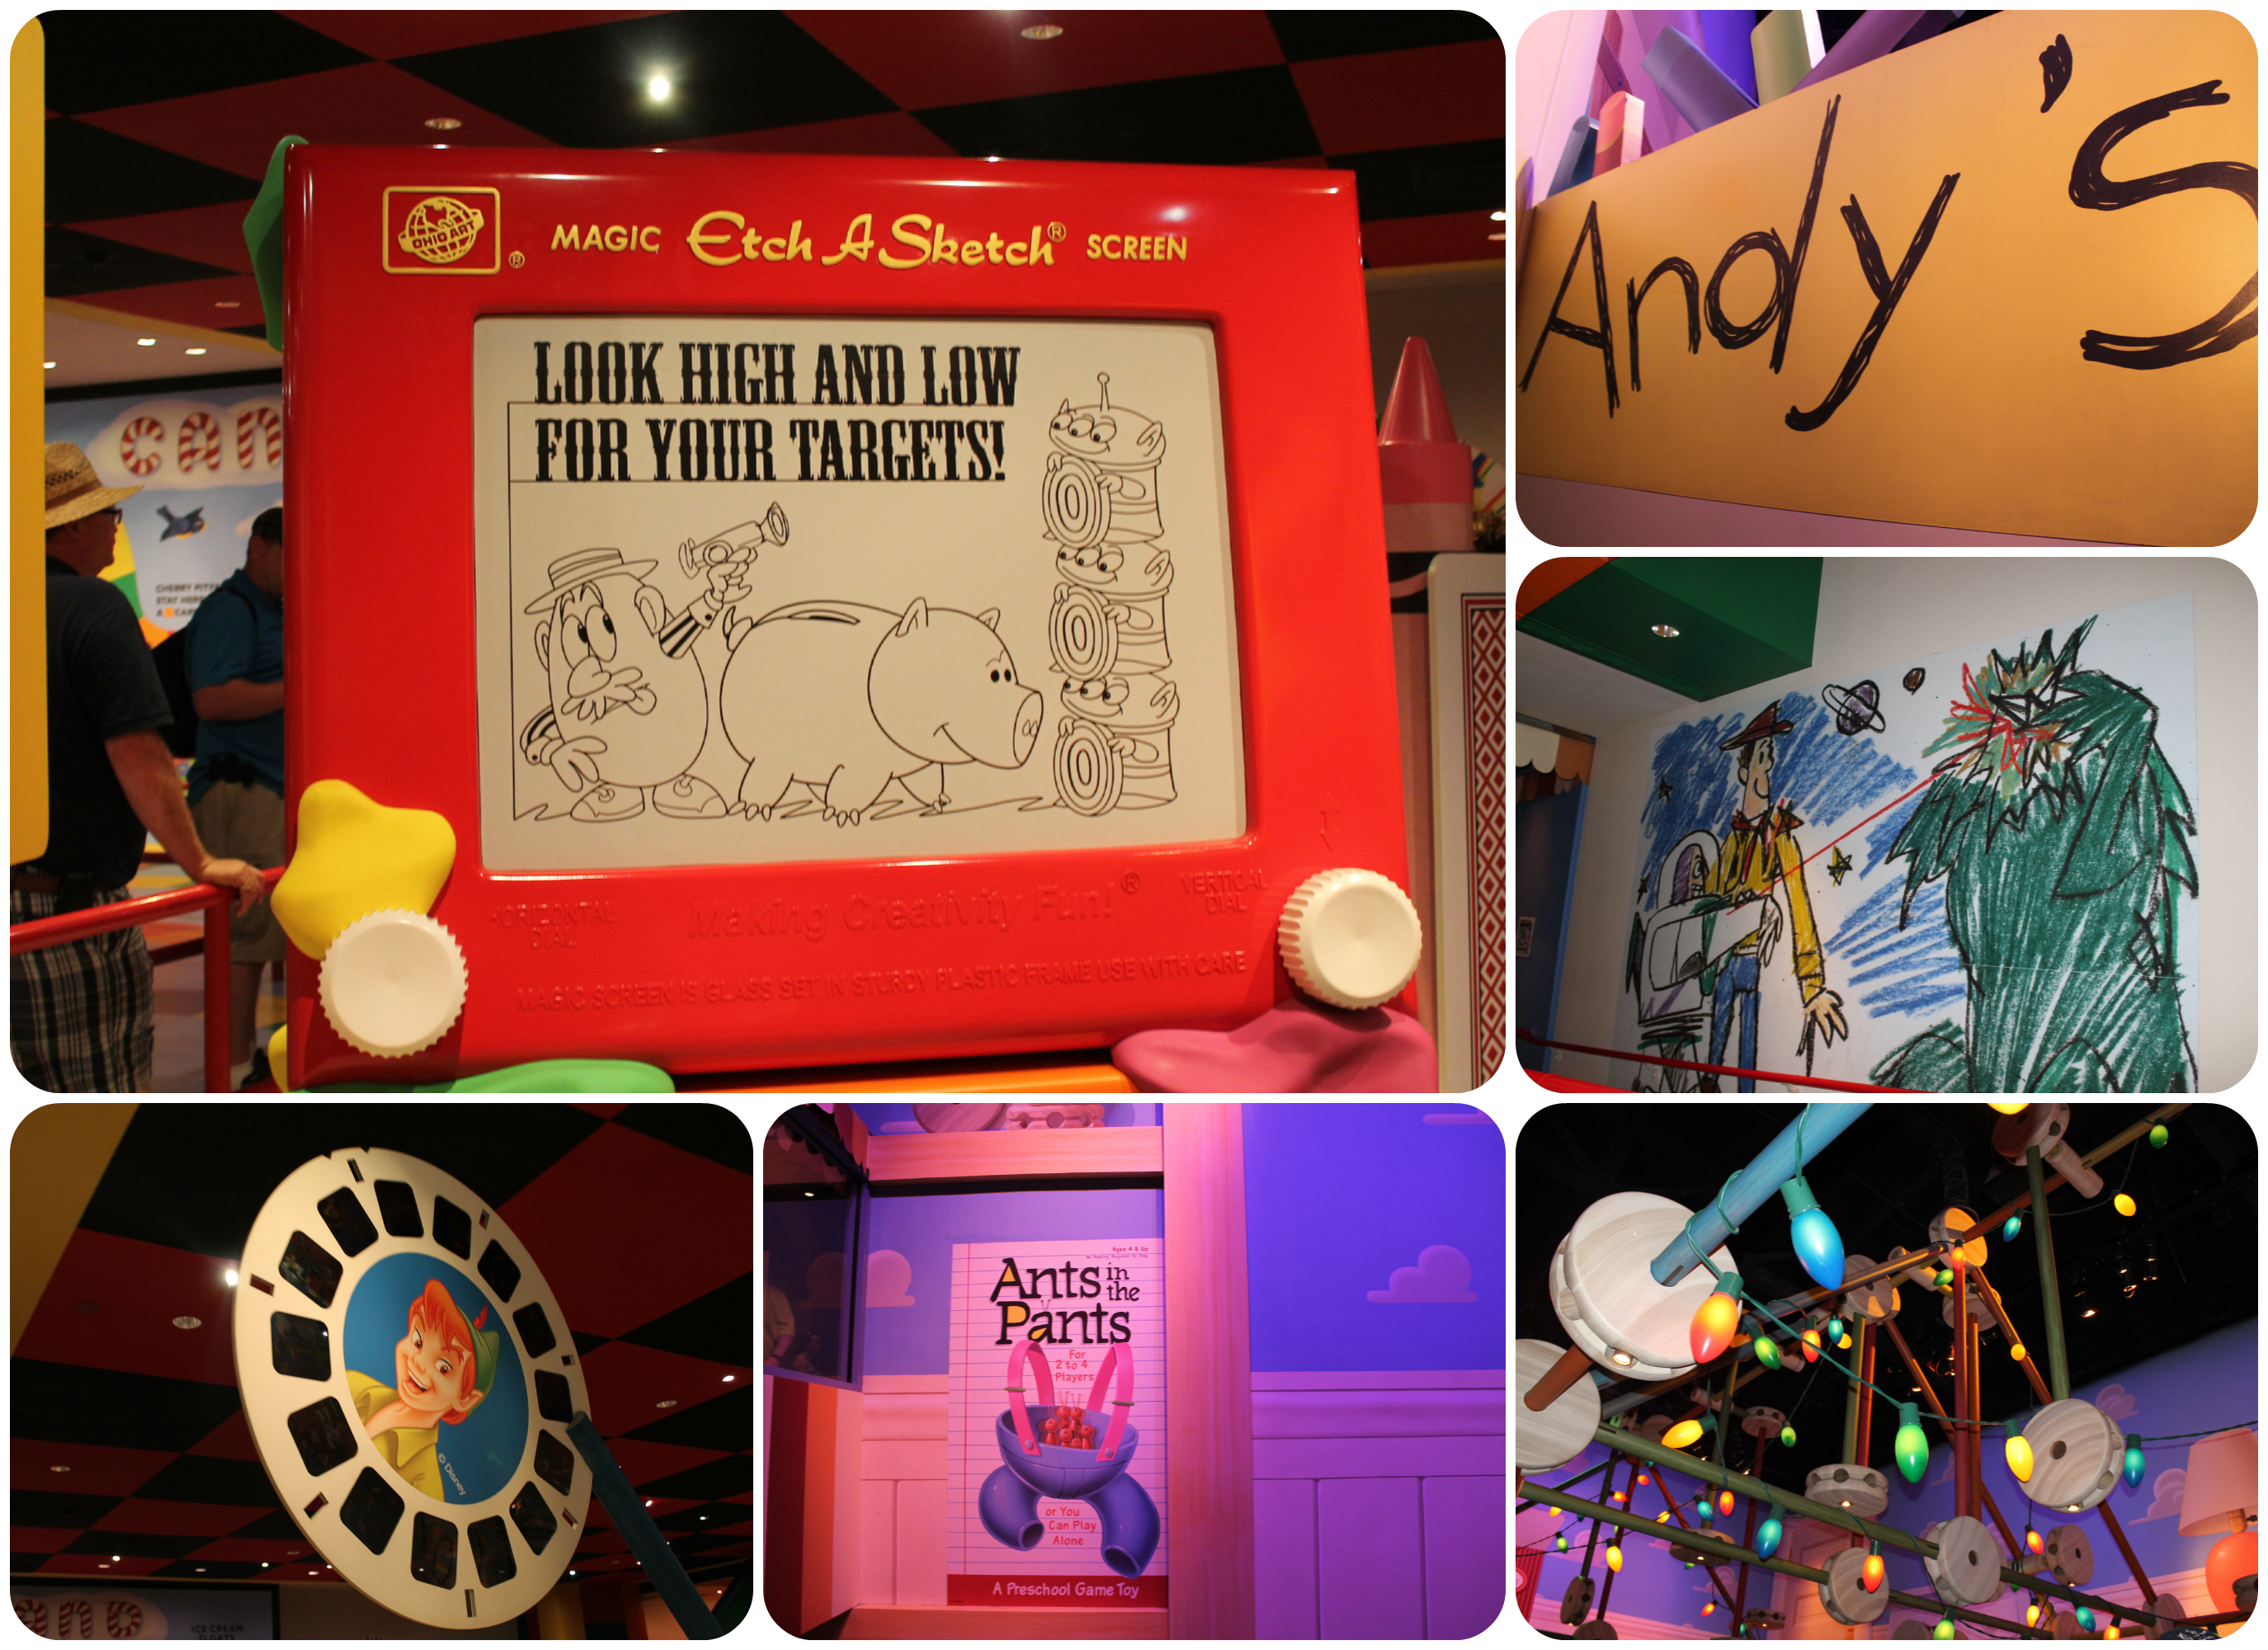 Toy Story Mania Ride In Hollywood Studios